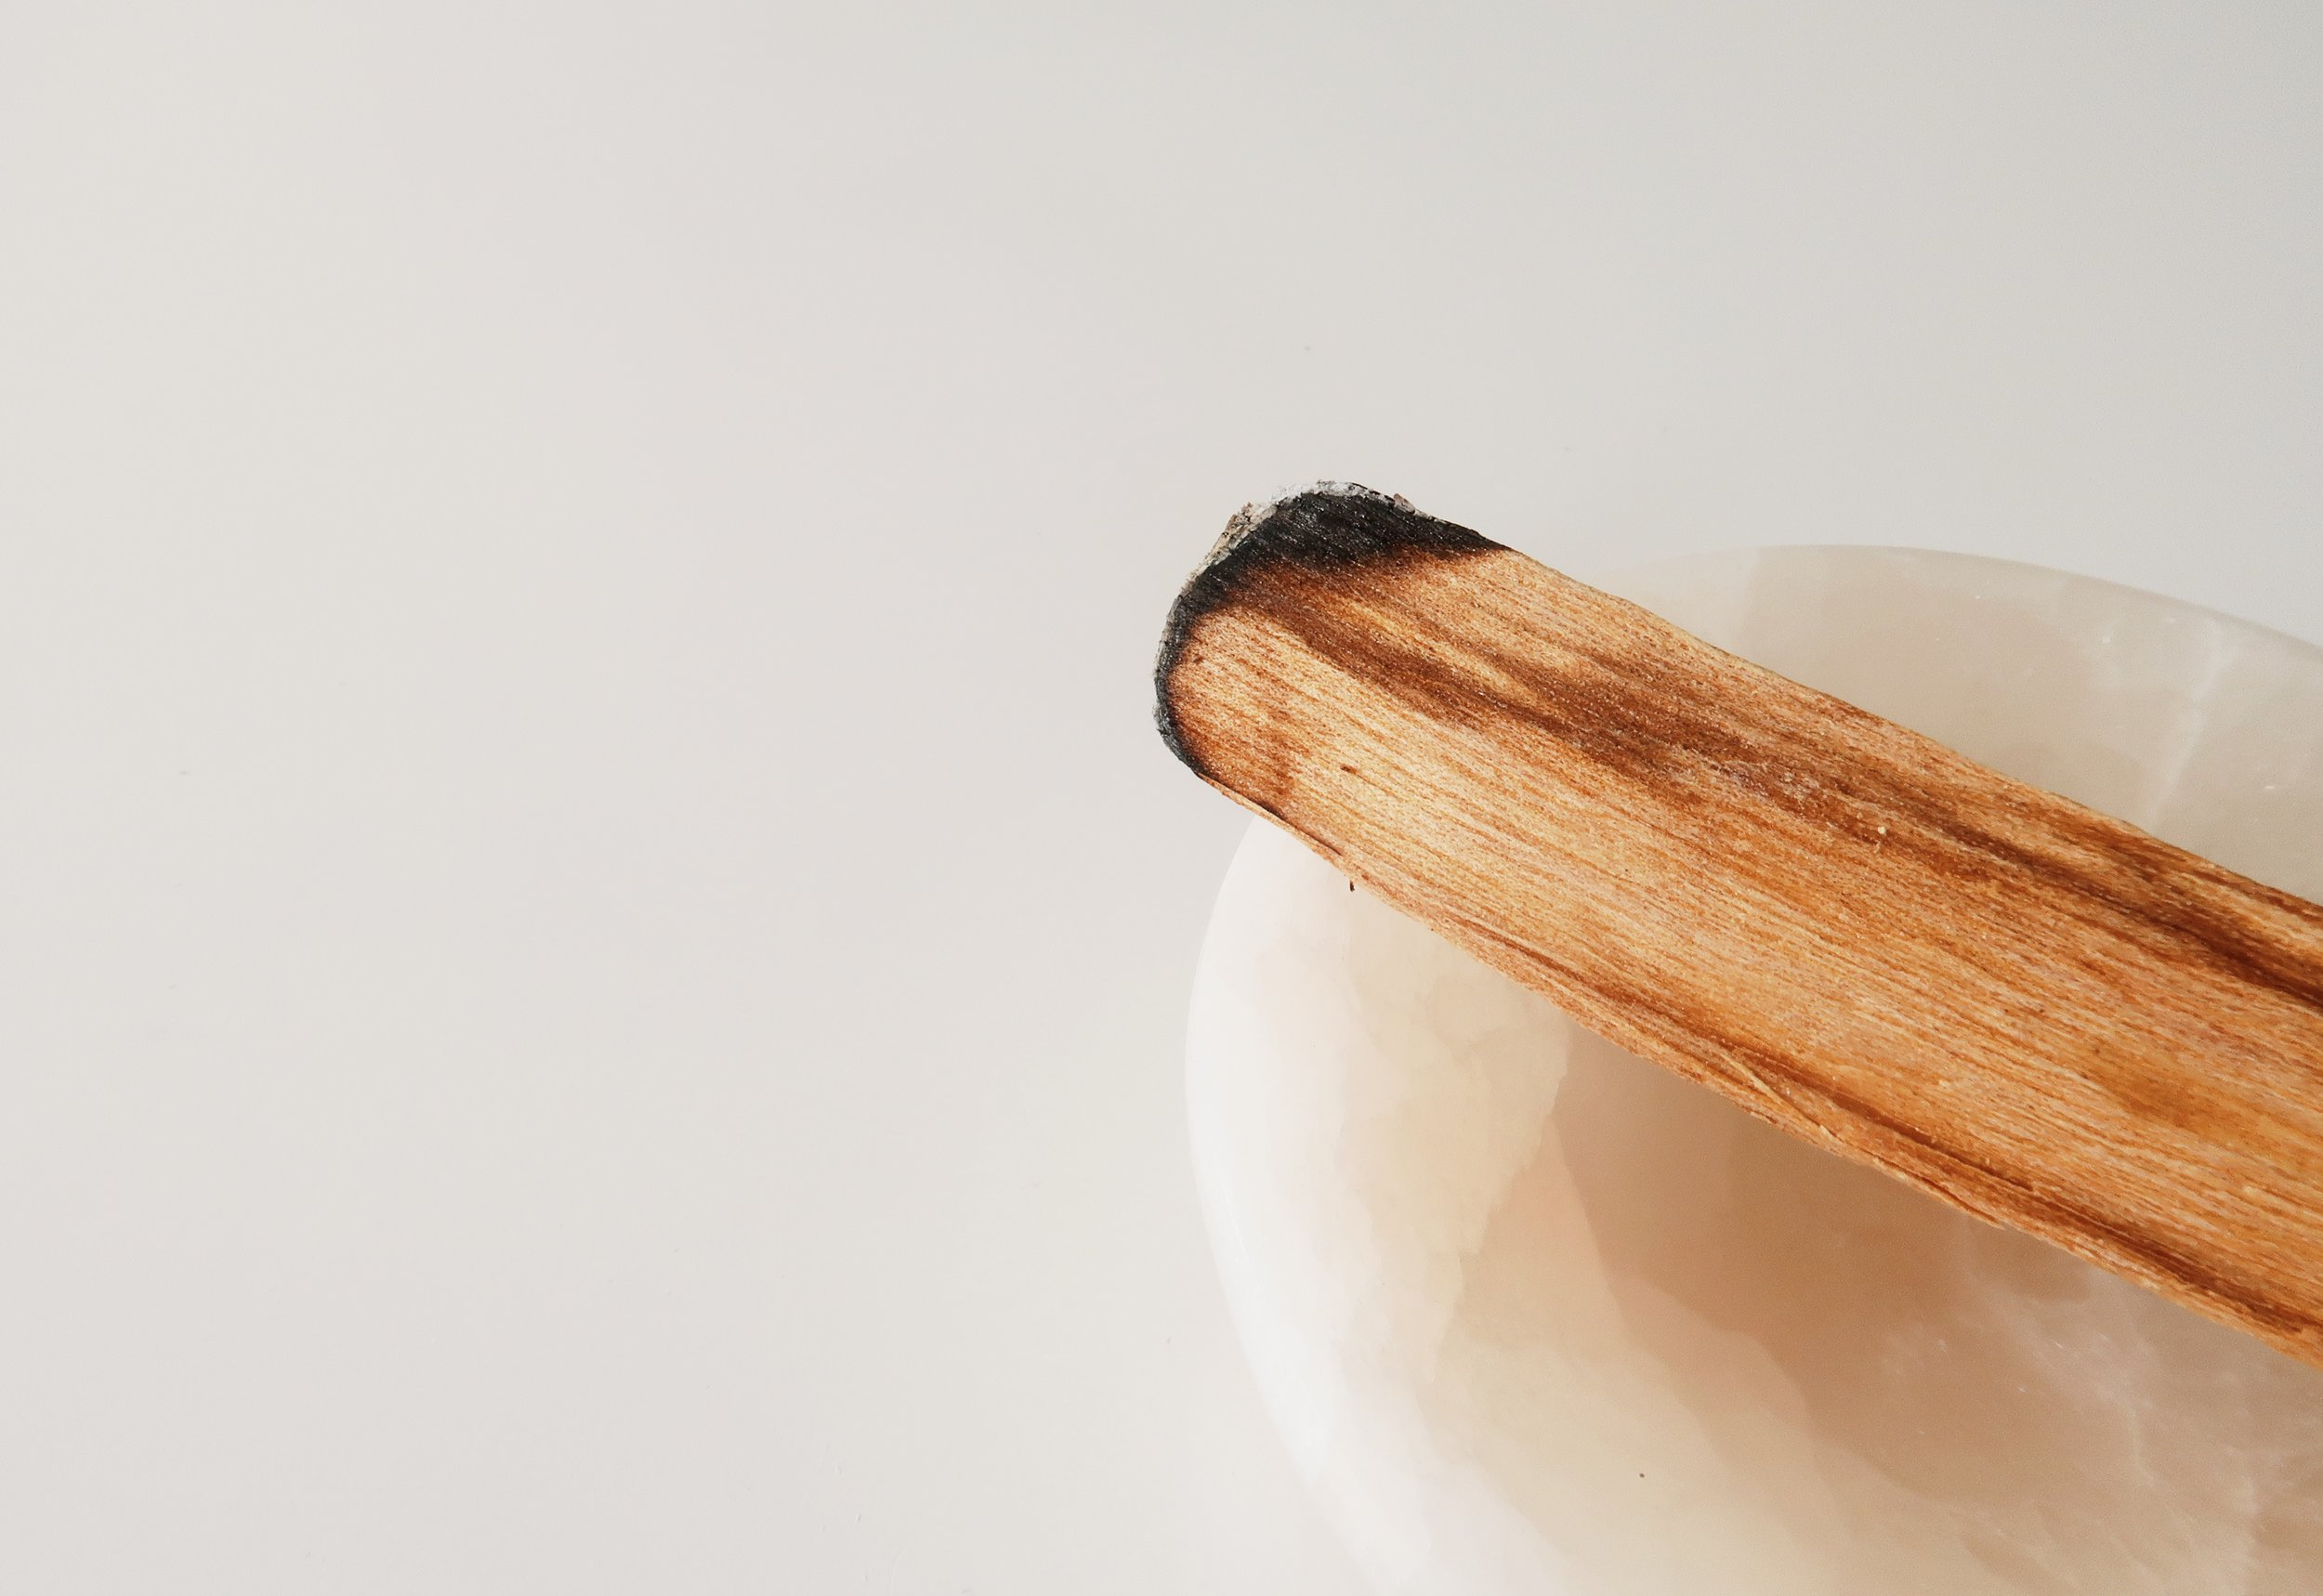 palo santo - Comes from the Palo Santo trees of South America